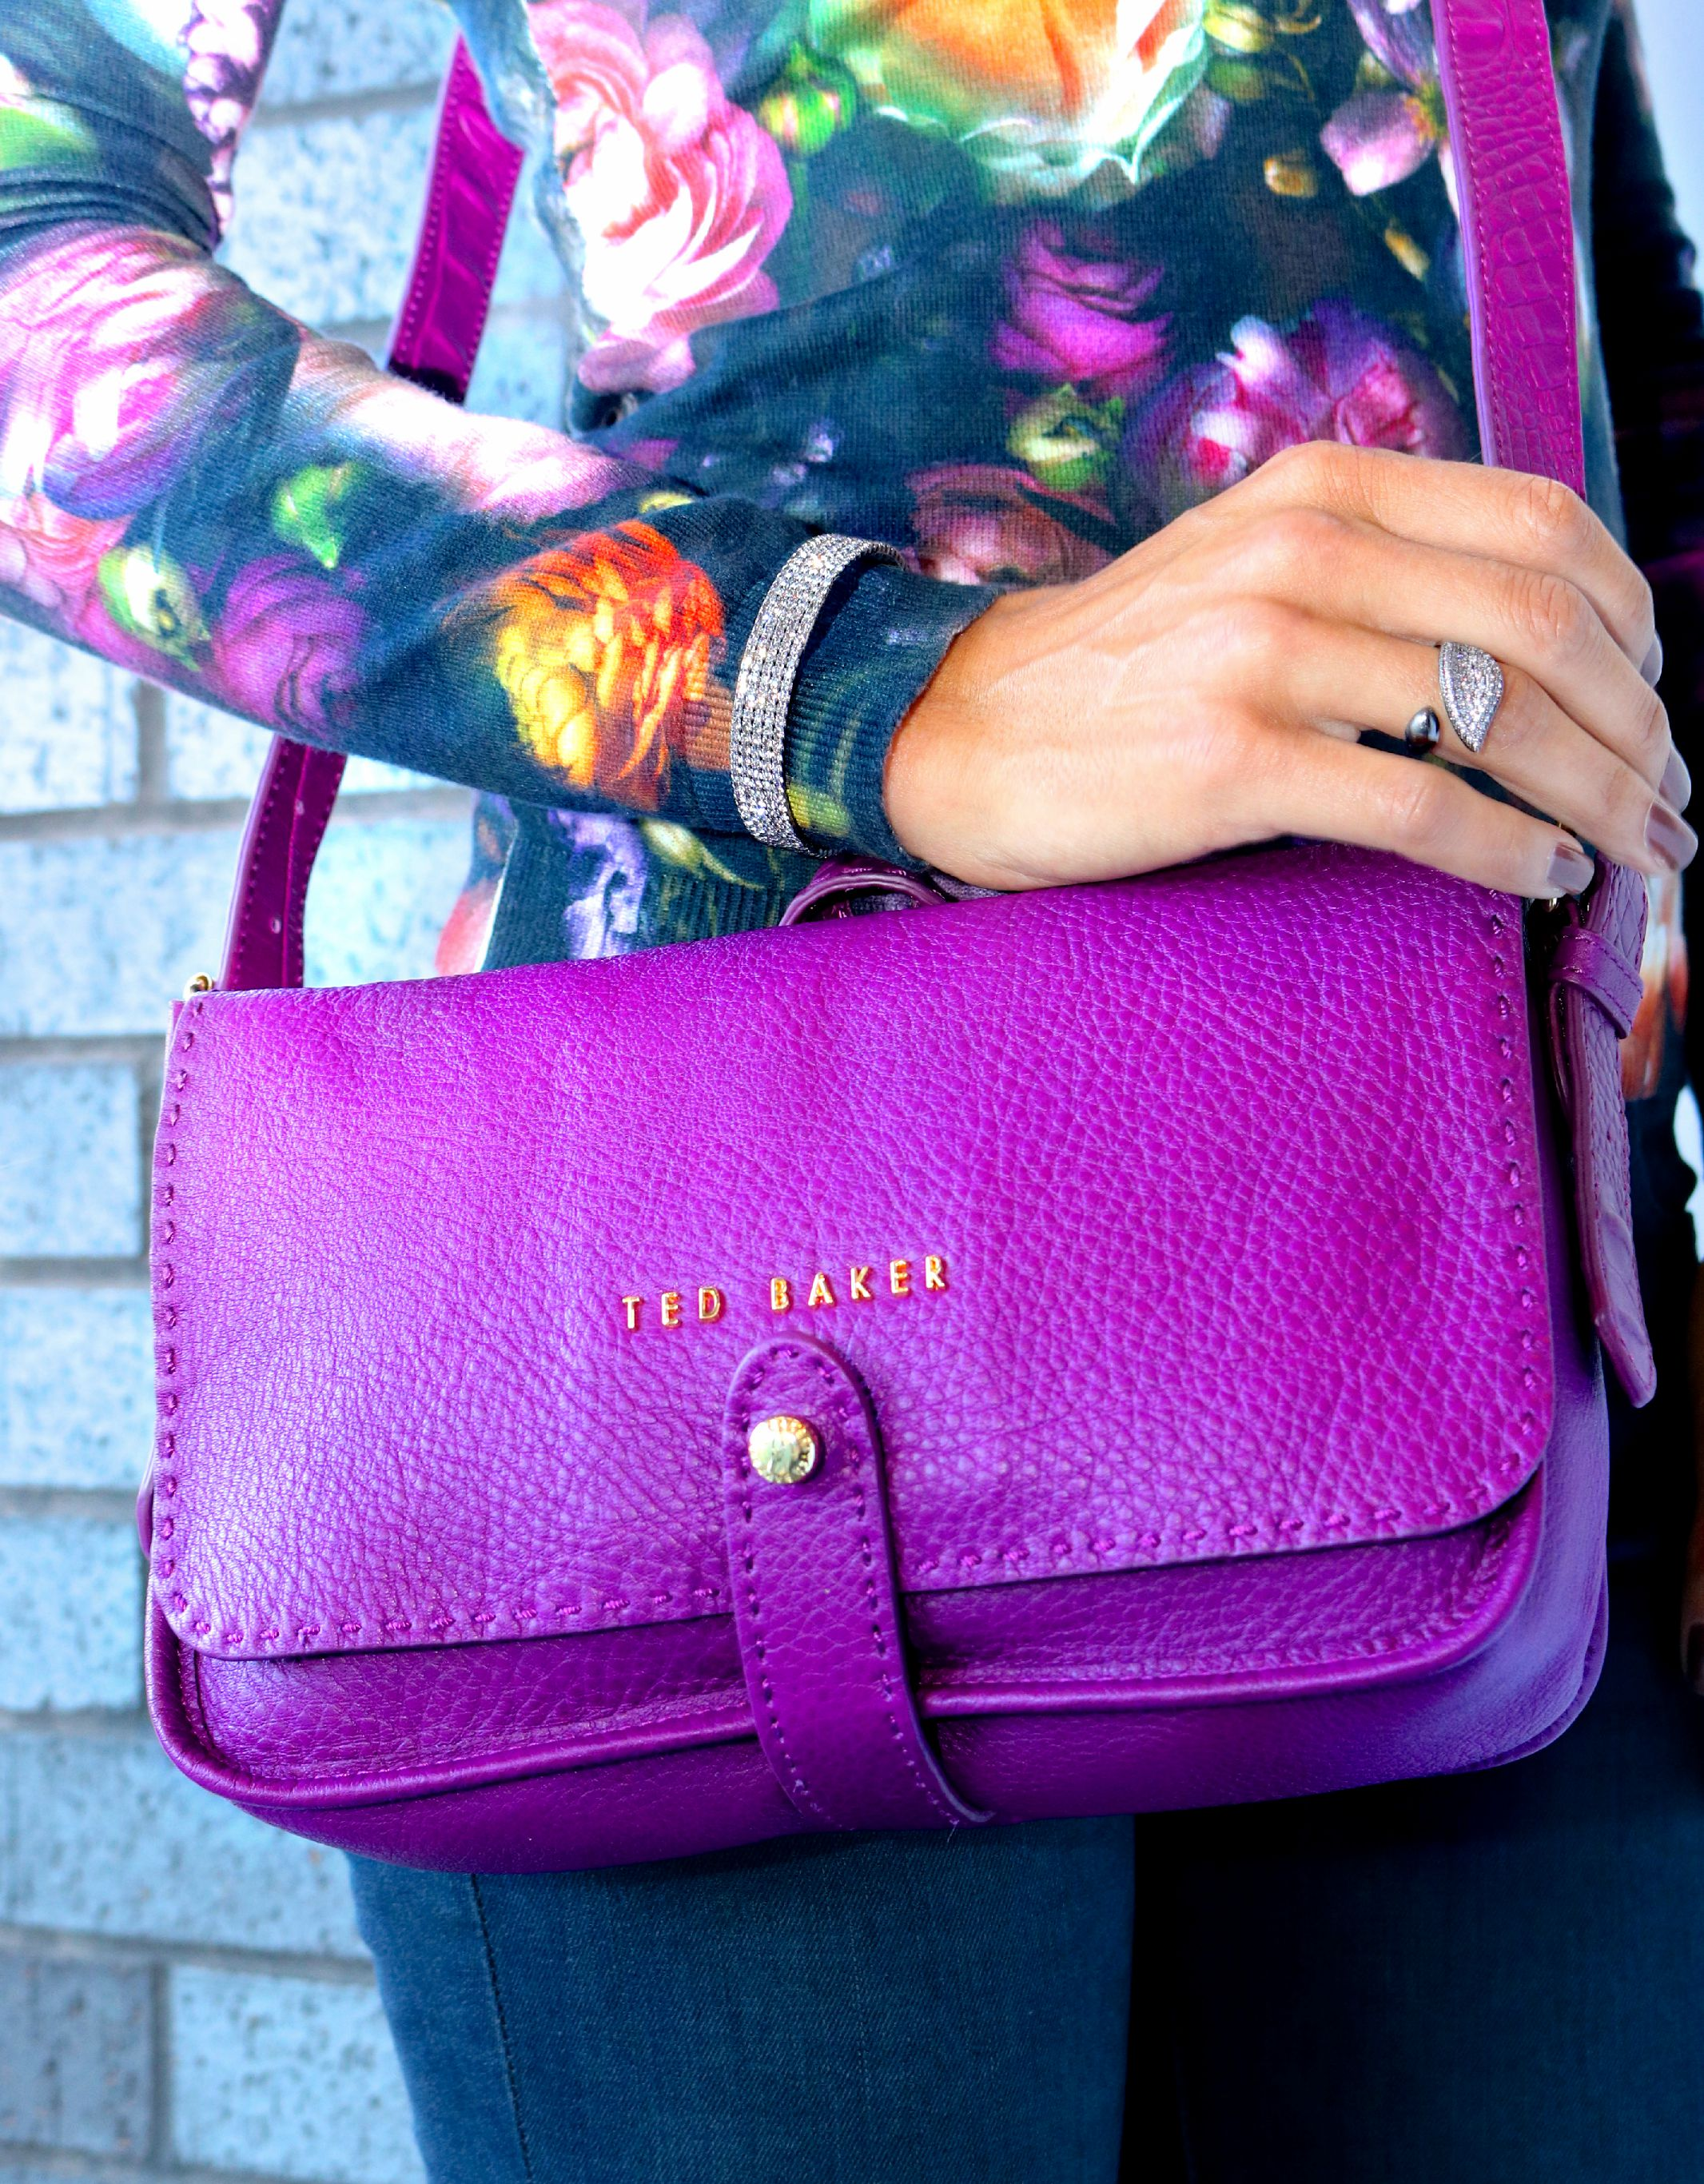 Ted Baker Gaiton Small Leather Crossbody Bag in Grape.  LIBERTÉ 5 Row CZ Bangle  and Leaf Ring in Gunmetal.